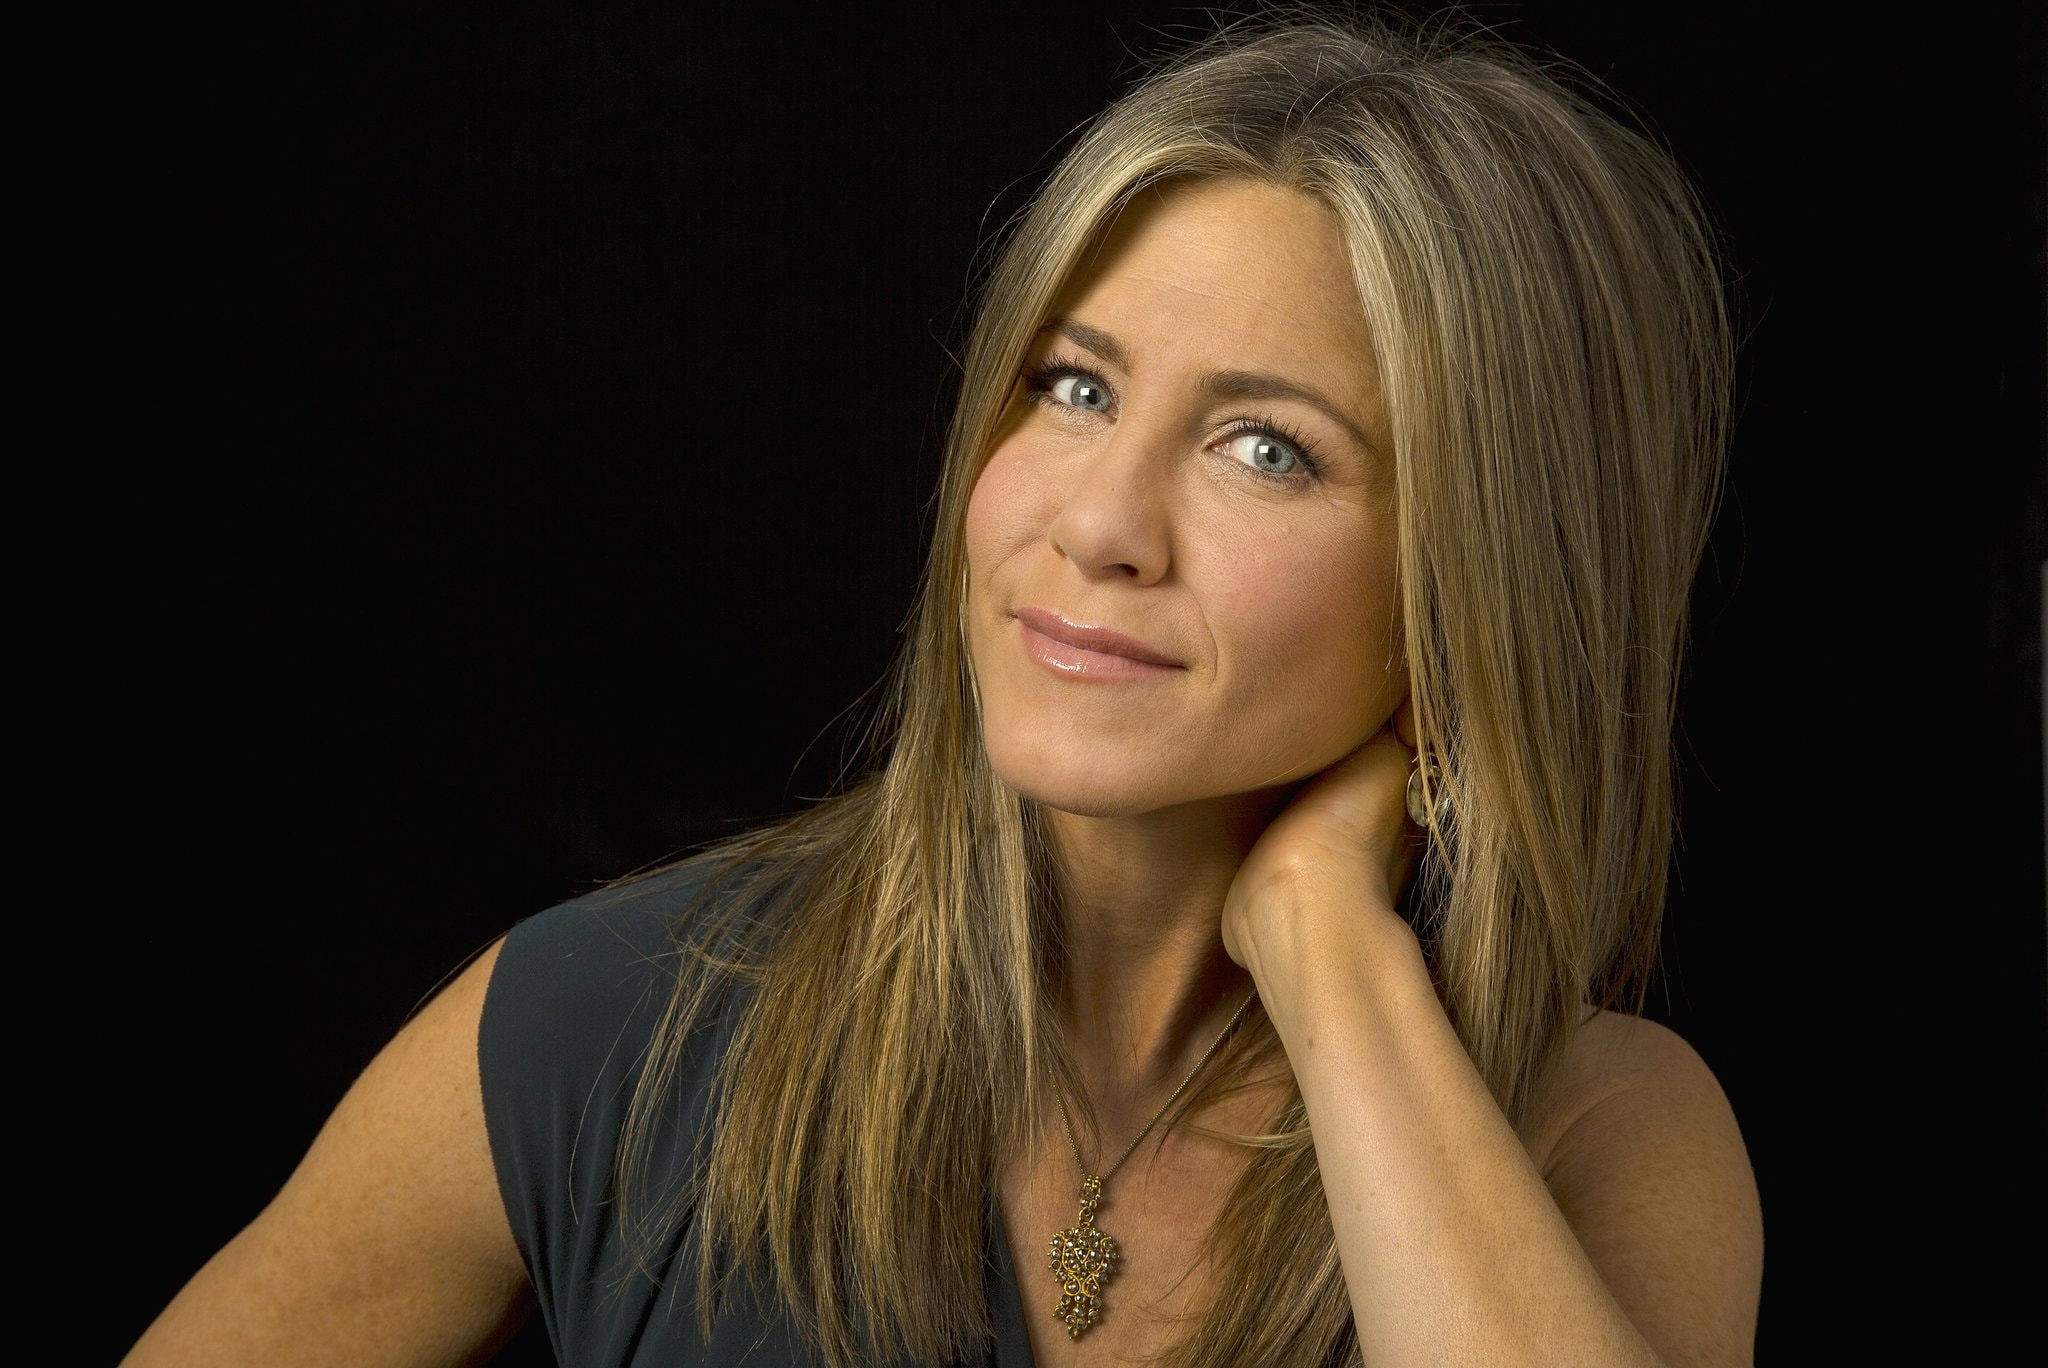 ****ENVELOPE STORY FOR NOVEMBER 20, 2014. DO NOT USE PRIOR TO PUBLICATION********** BURBANK, CA., OCTOBER 22,, 2014, -- The Envelope talks with Jennifer Aniston, her Oscar potential roles in the Envelope Lead Actress Roundtable. (Kirk McKoy / Los Angeles Times)